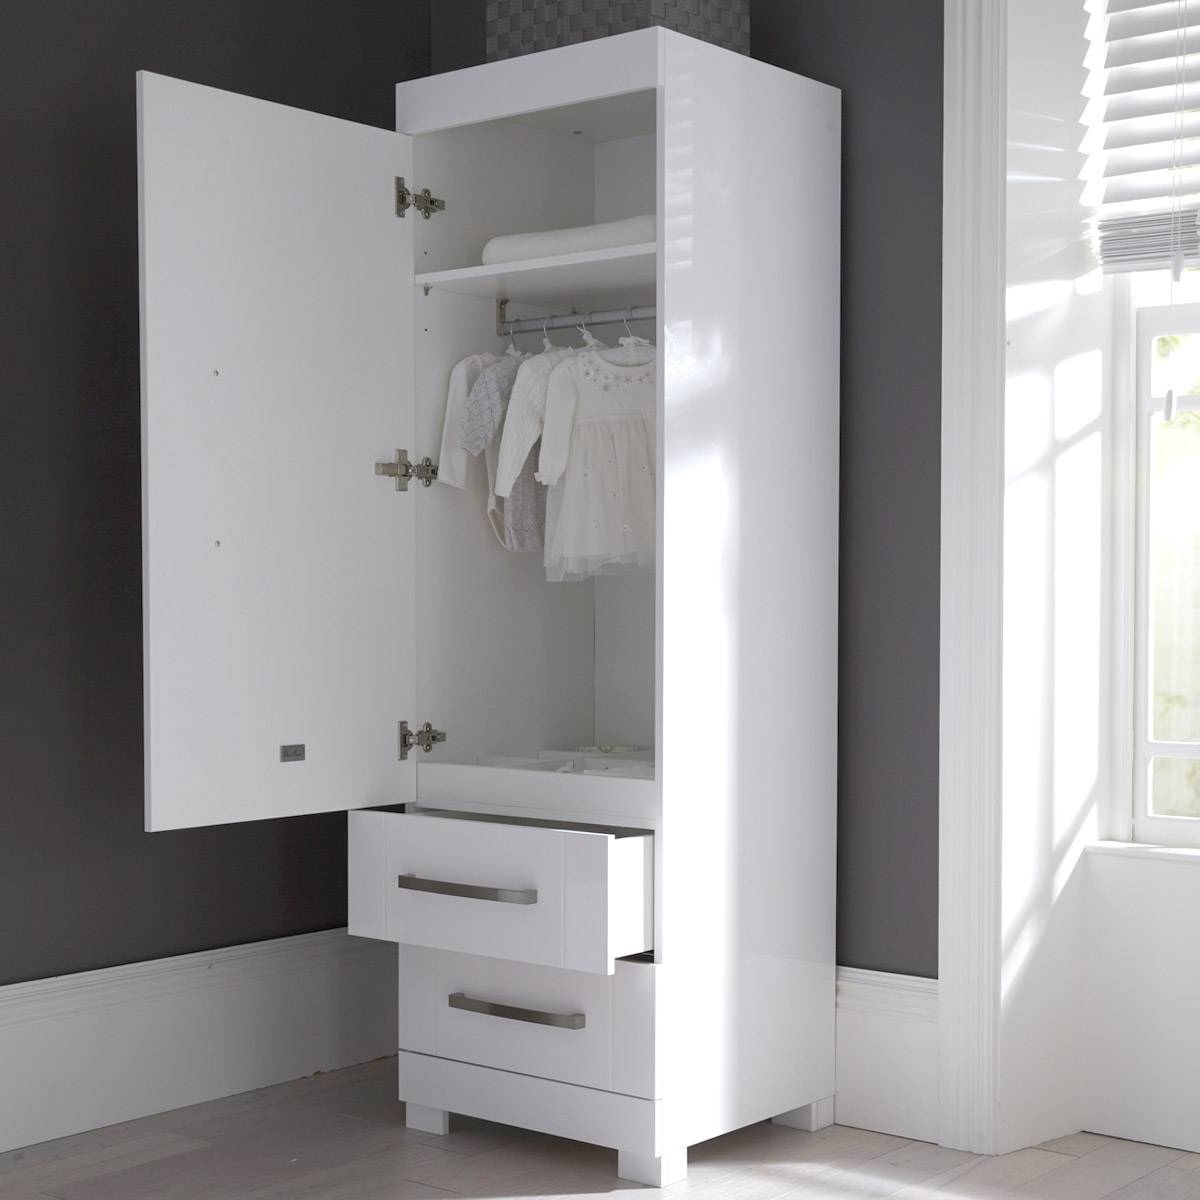 Notting Hill Nursery Single Wardrobe | Silver Cross Uk for Single Black Wardrobes (Image 5 of 15)